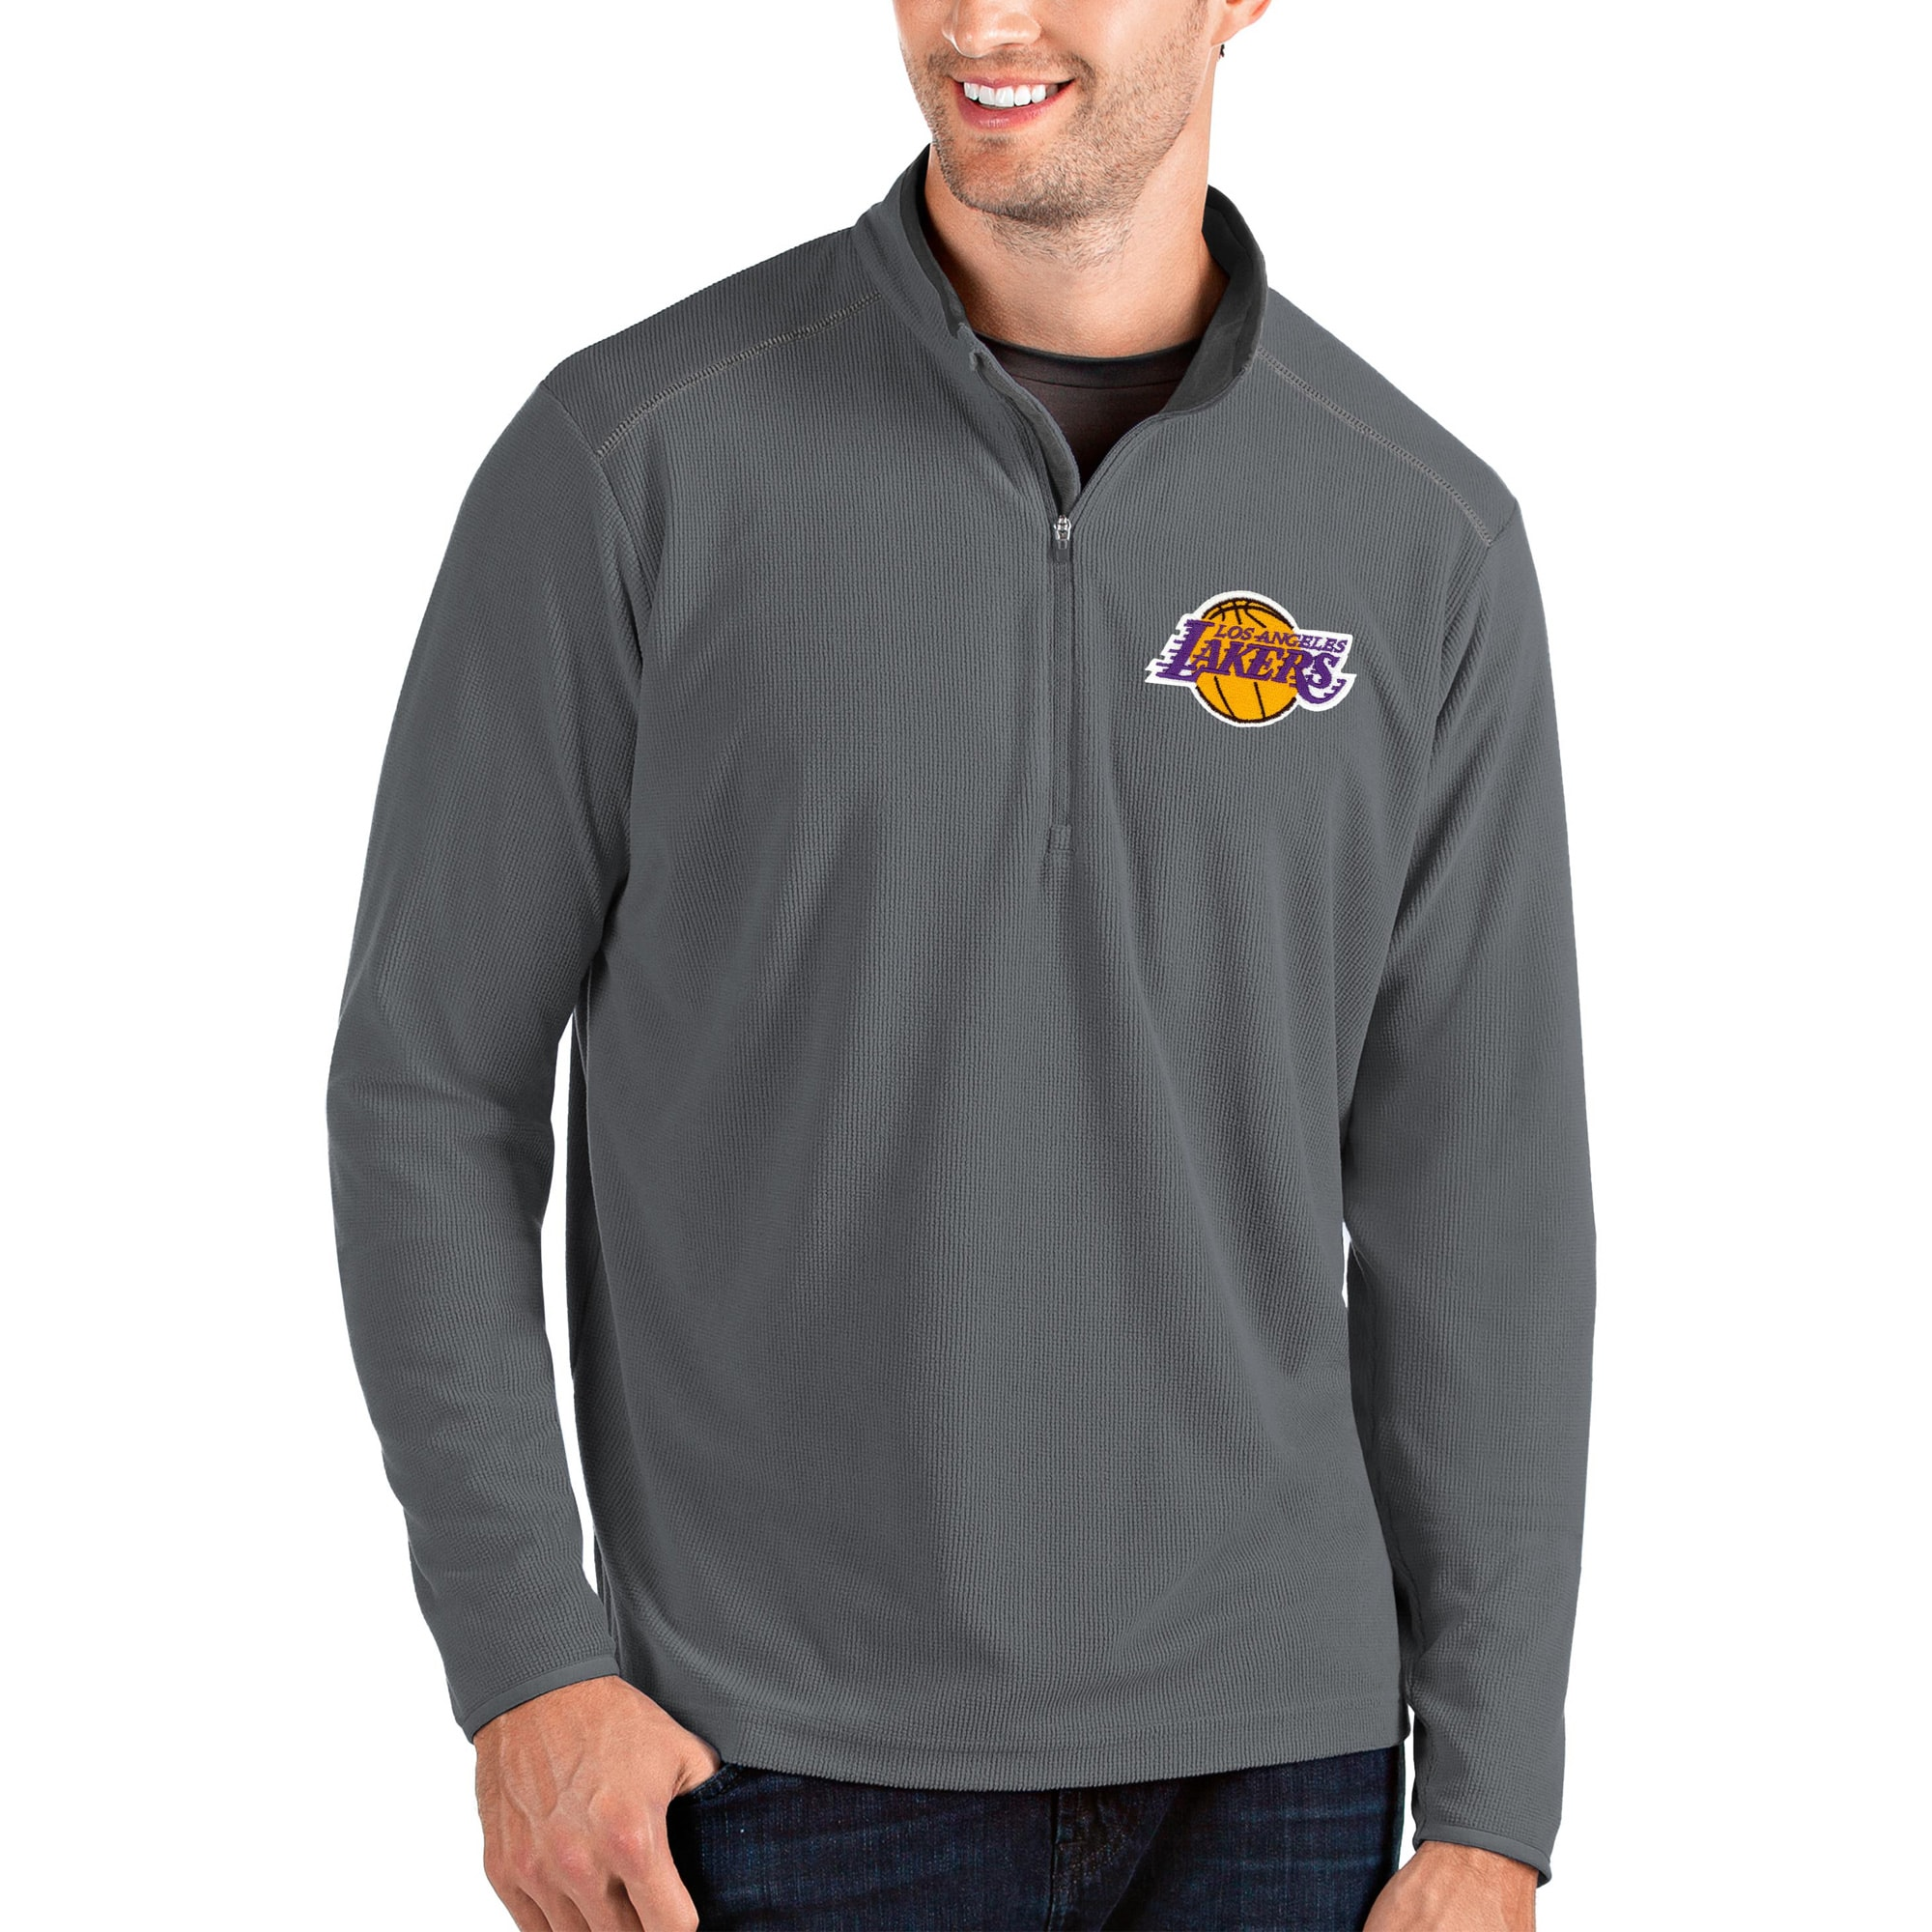 Los Angeles Lakers Antigua Glacier Quarter-Zip Pullover Jacket - Charcoal/Gray